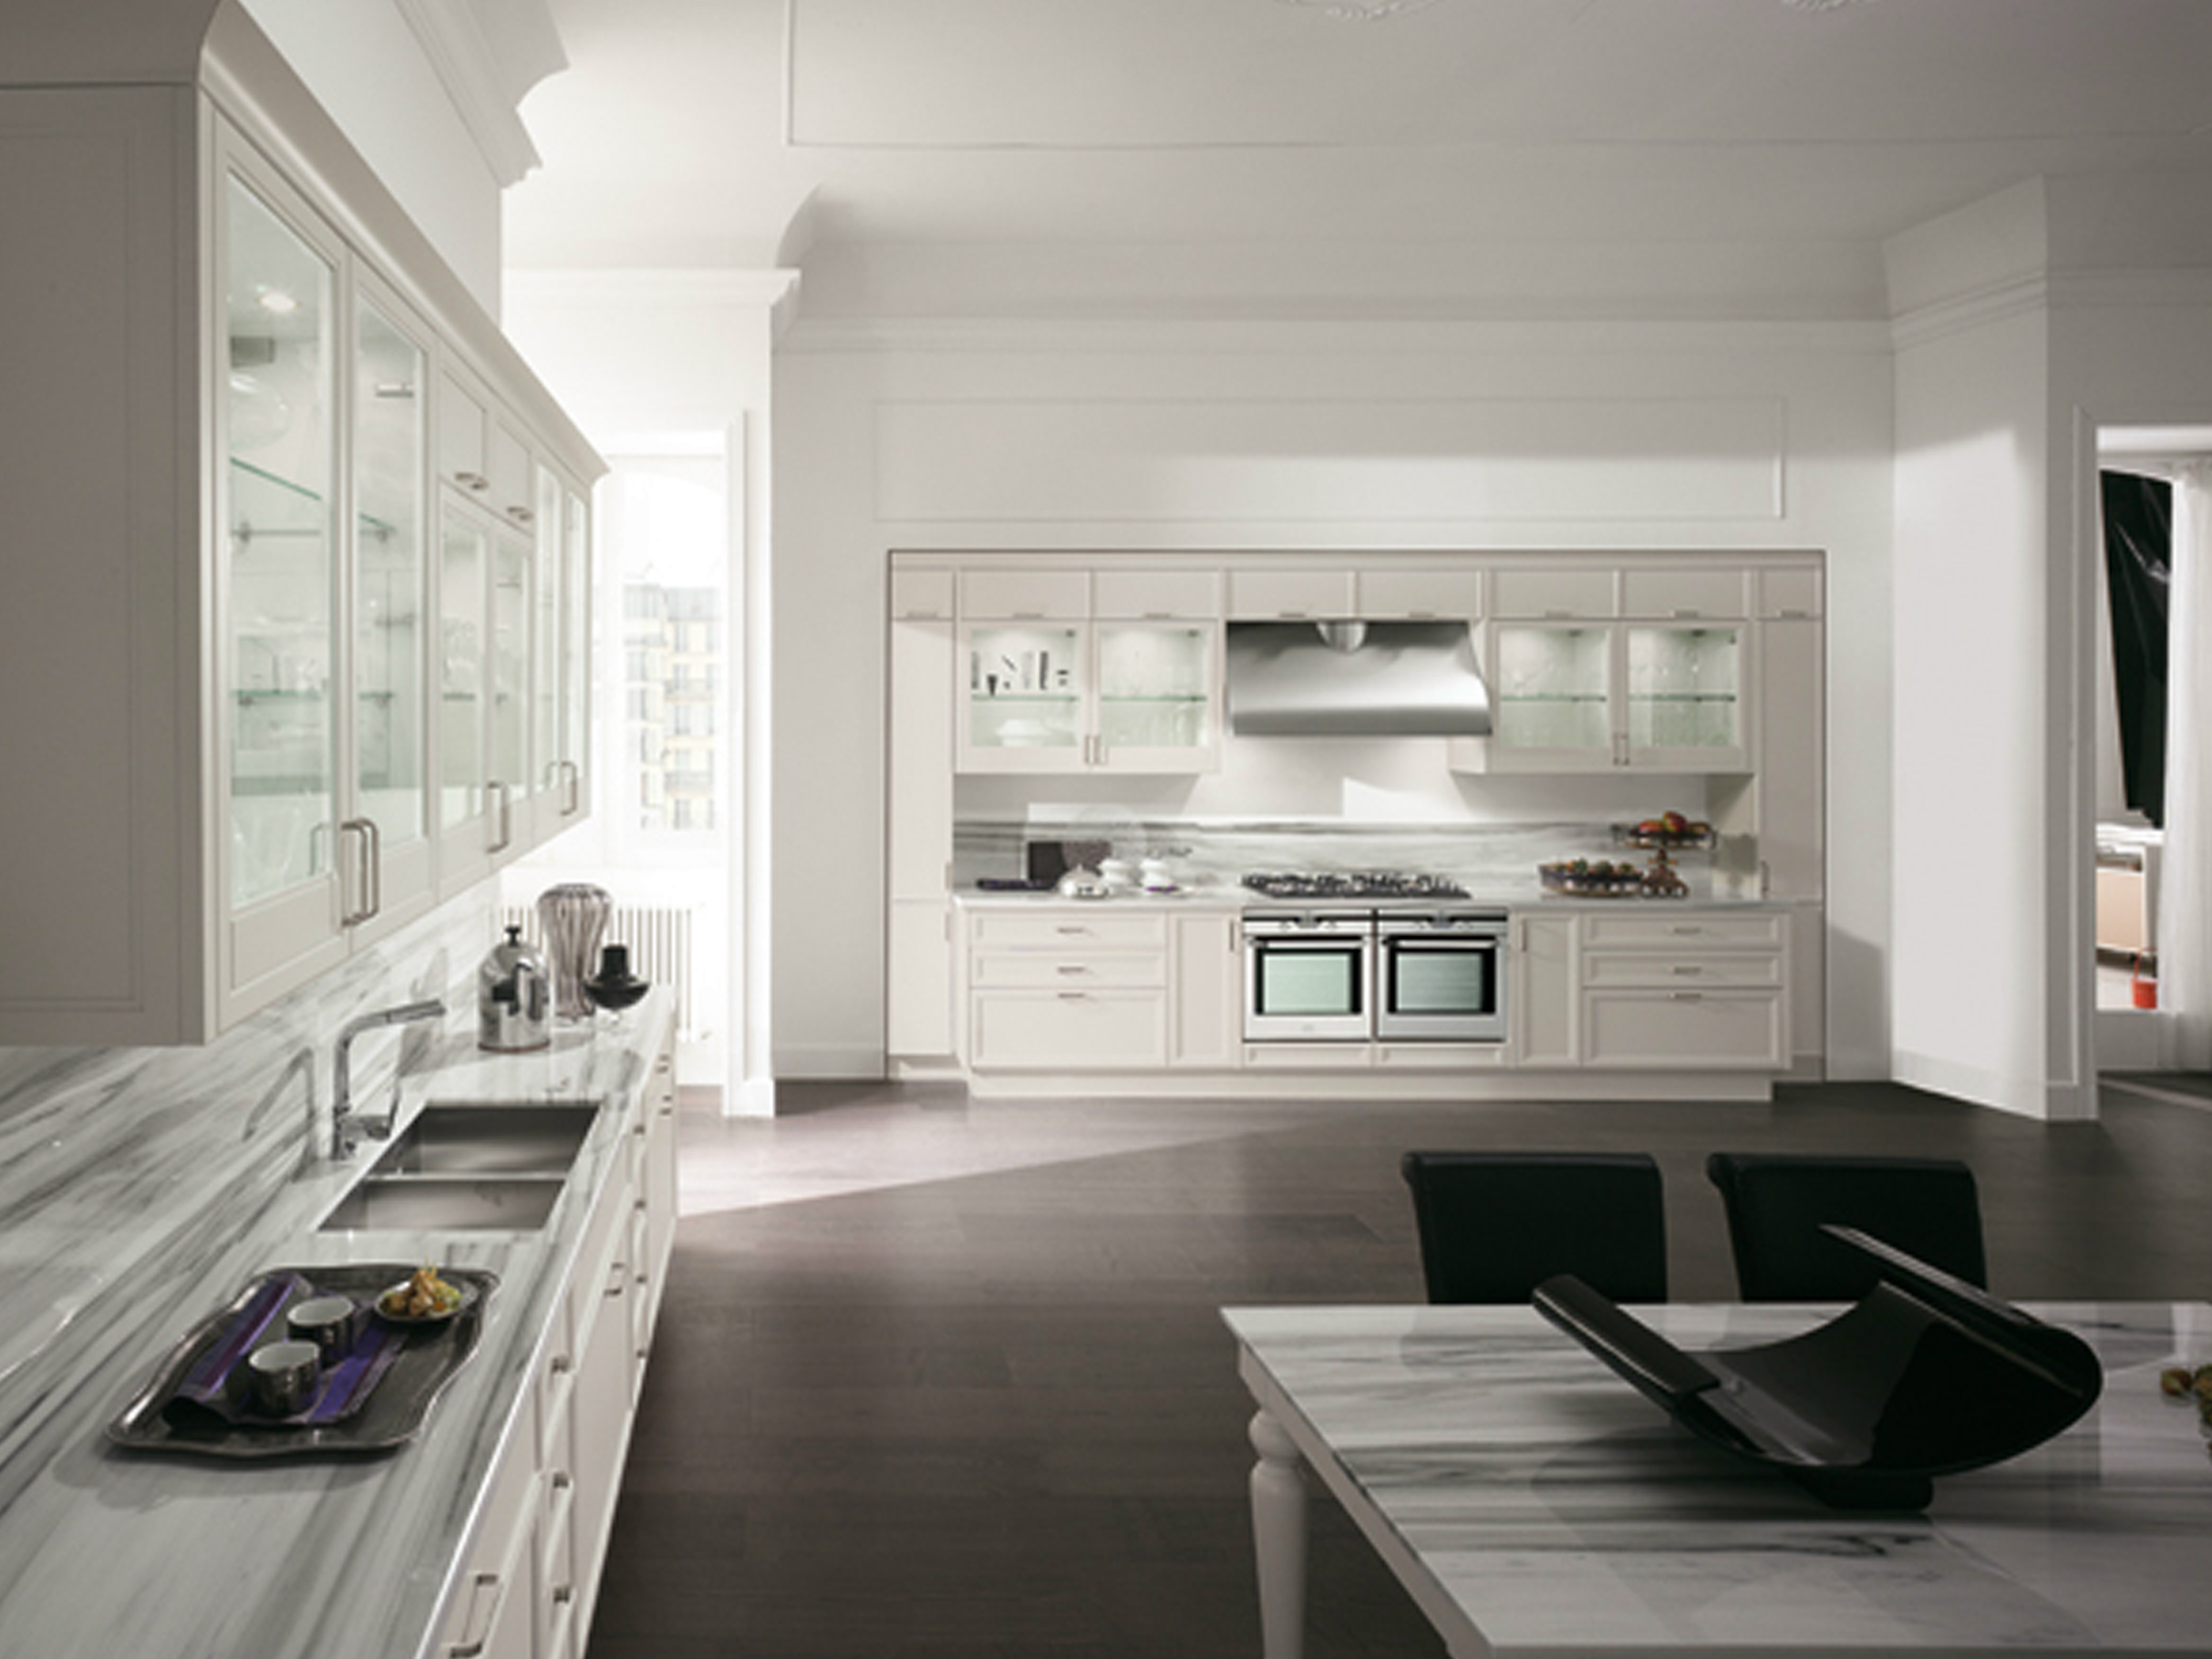 Avenue cucina lineare by aster cucine for Cucina lineare